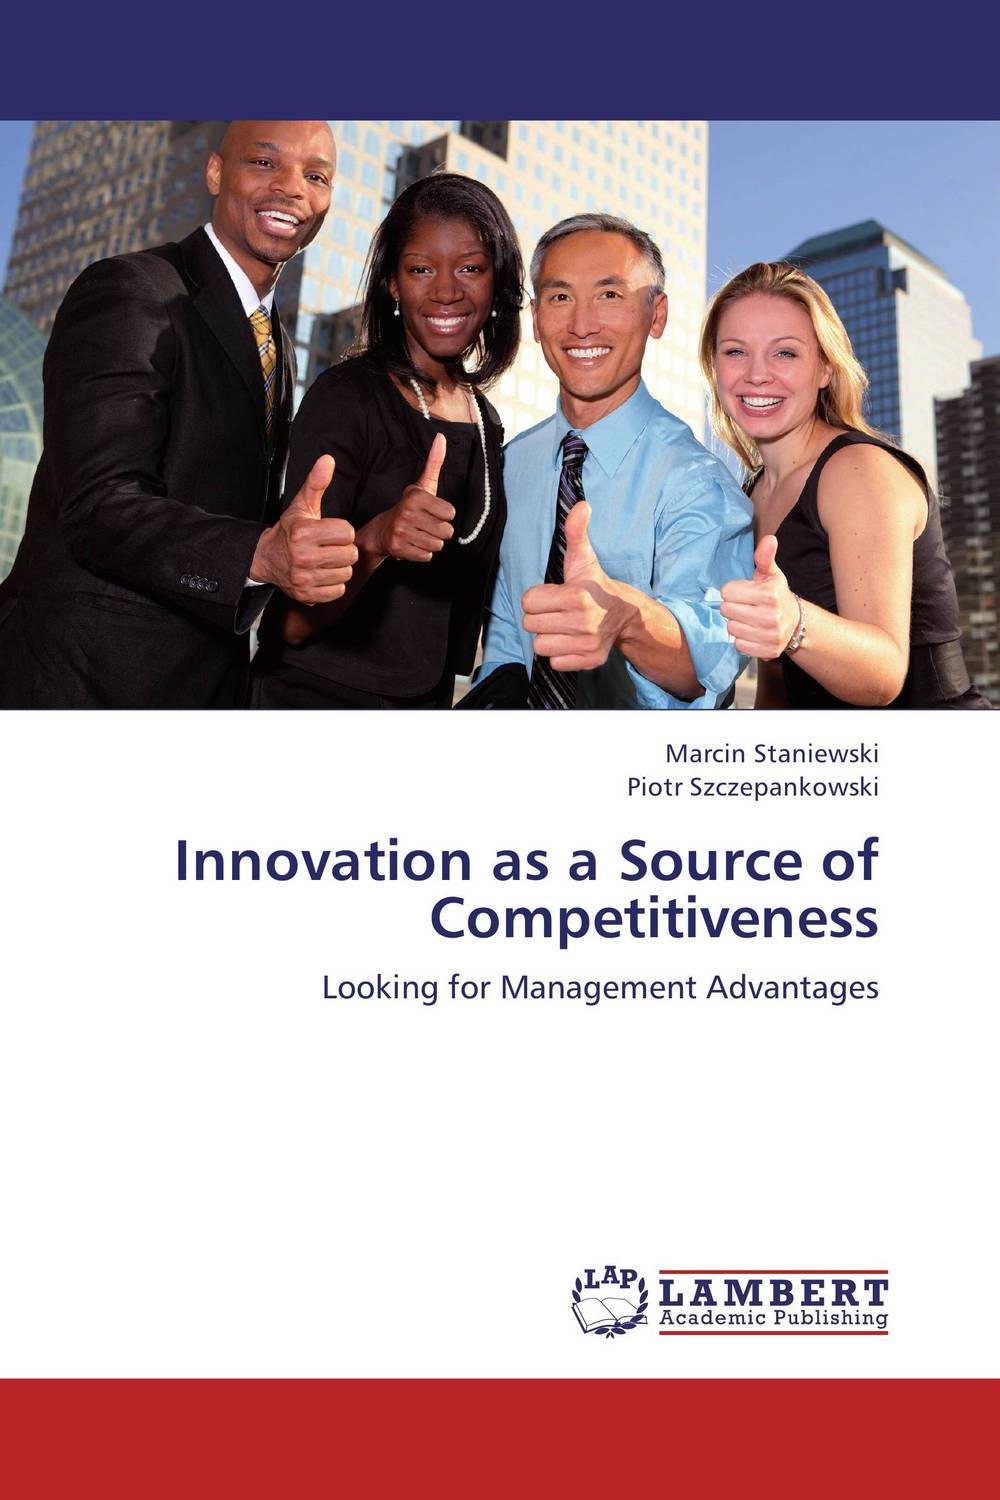 Innovation as a Source of Competitiveness peter fisk gamechangers creating innovative strategies for business and brands new approaches to strategy innovation and marketing